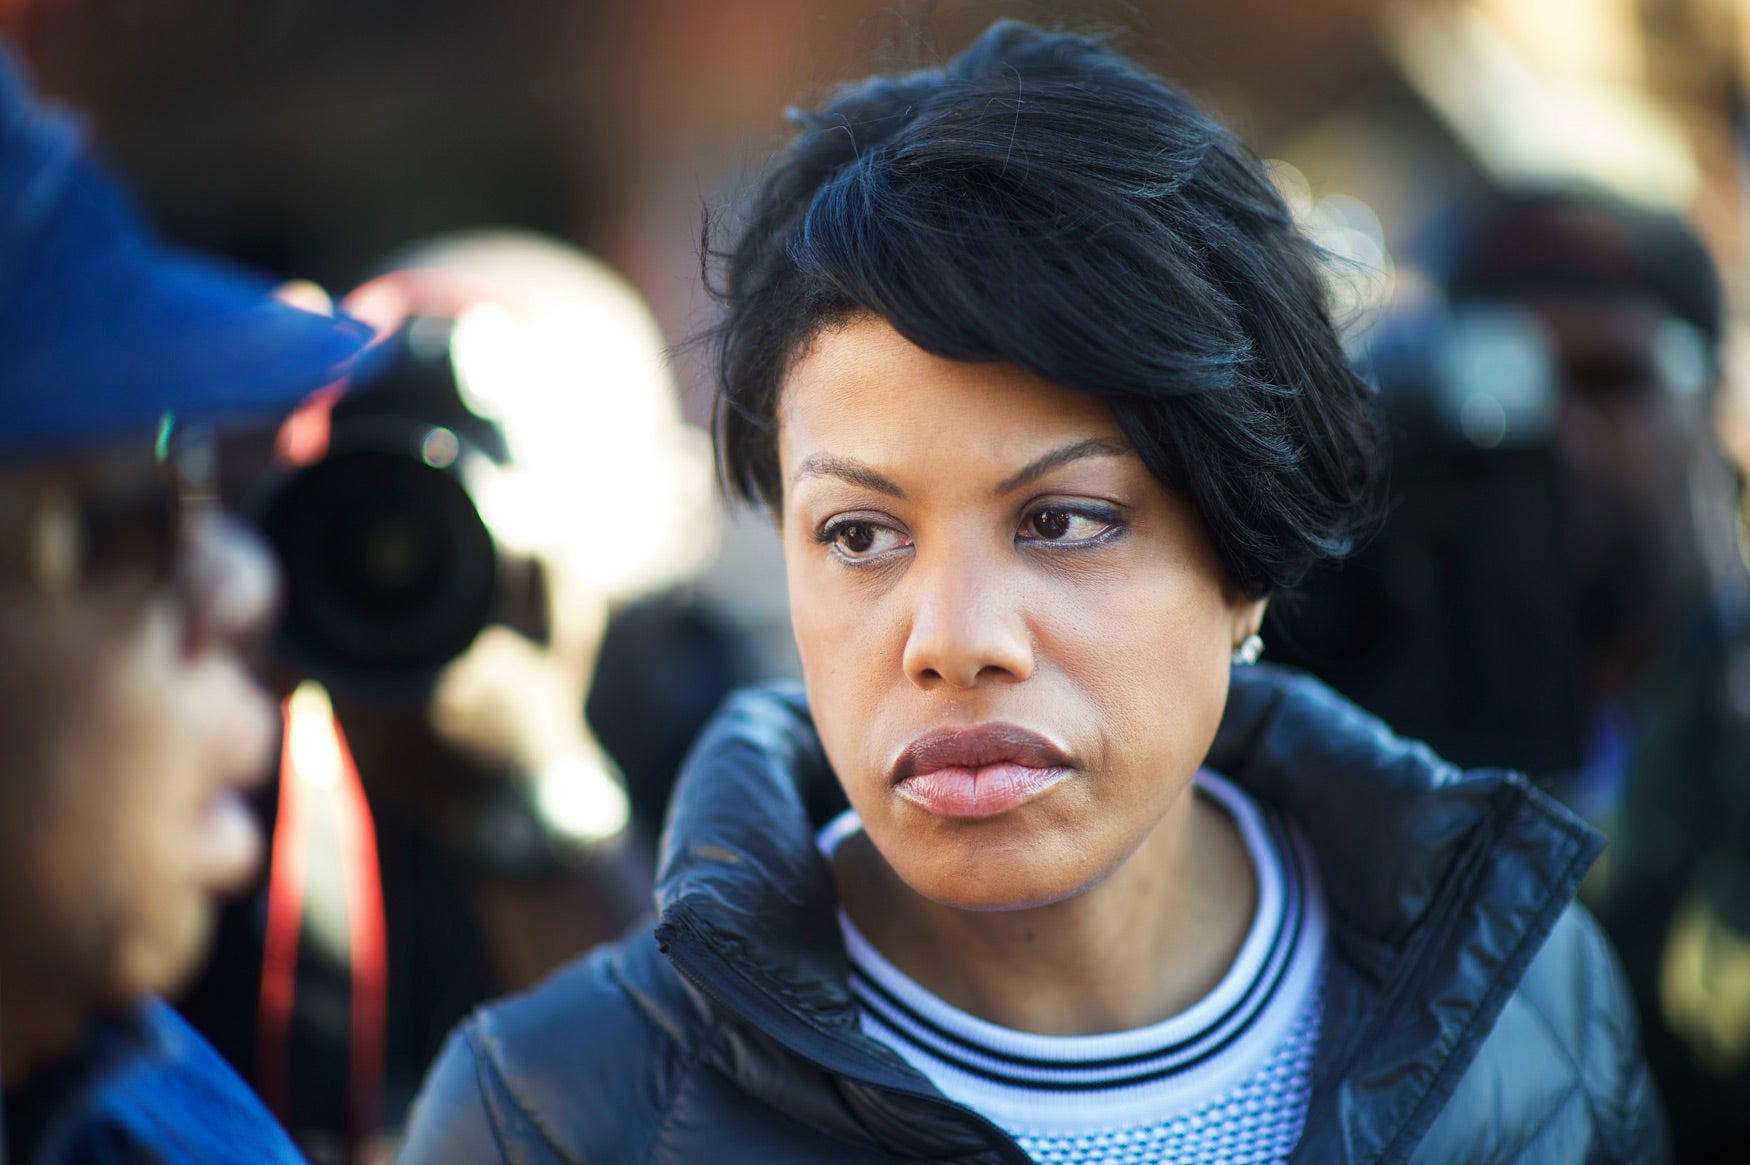 Baltimore Mayor Apologizes for Calling Rioters 'Thugs'